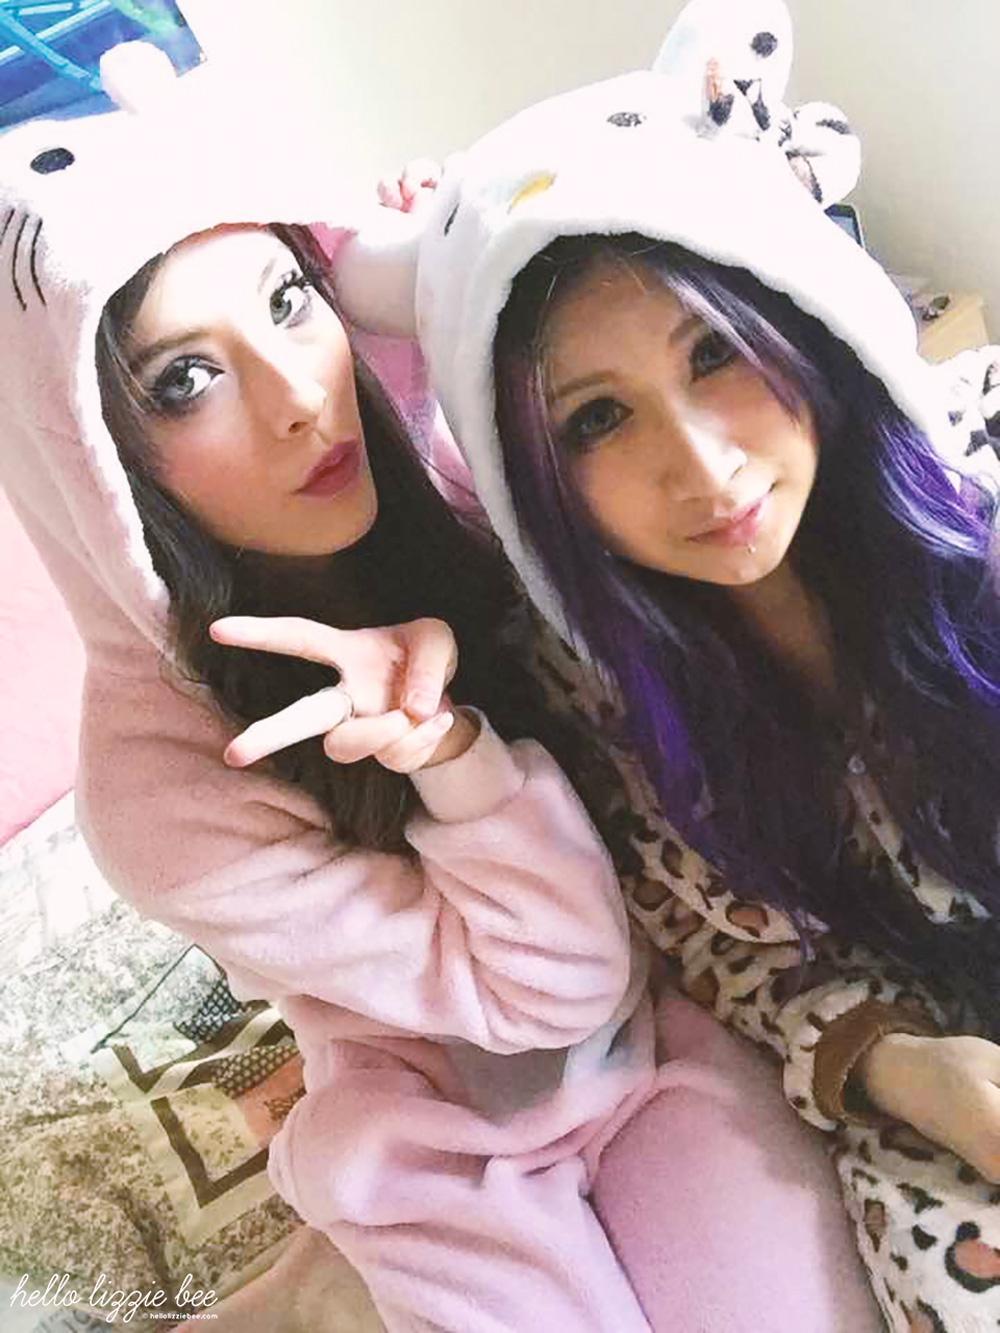 gyaru sleepover in kigurumi